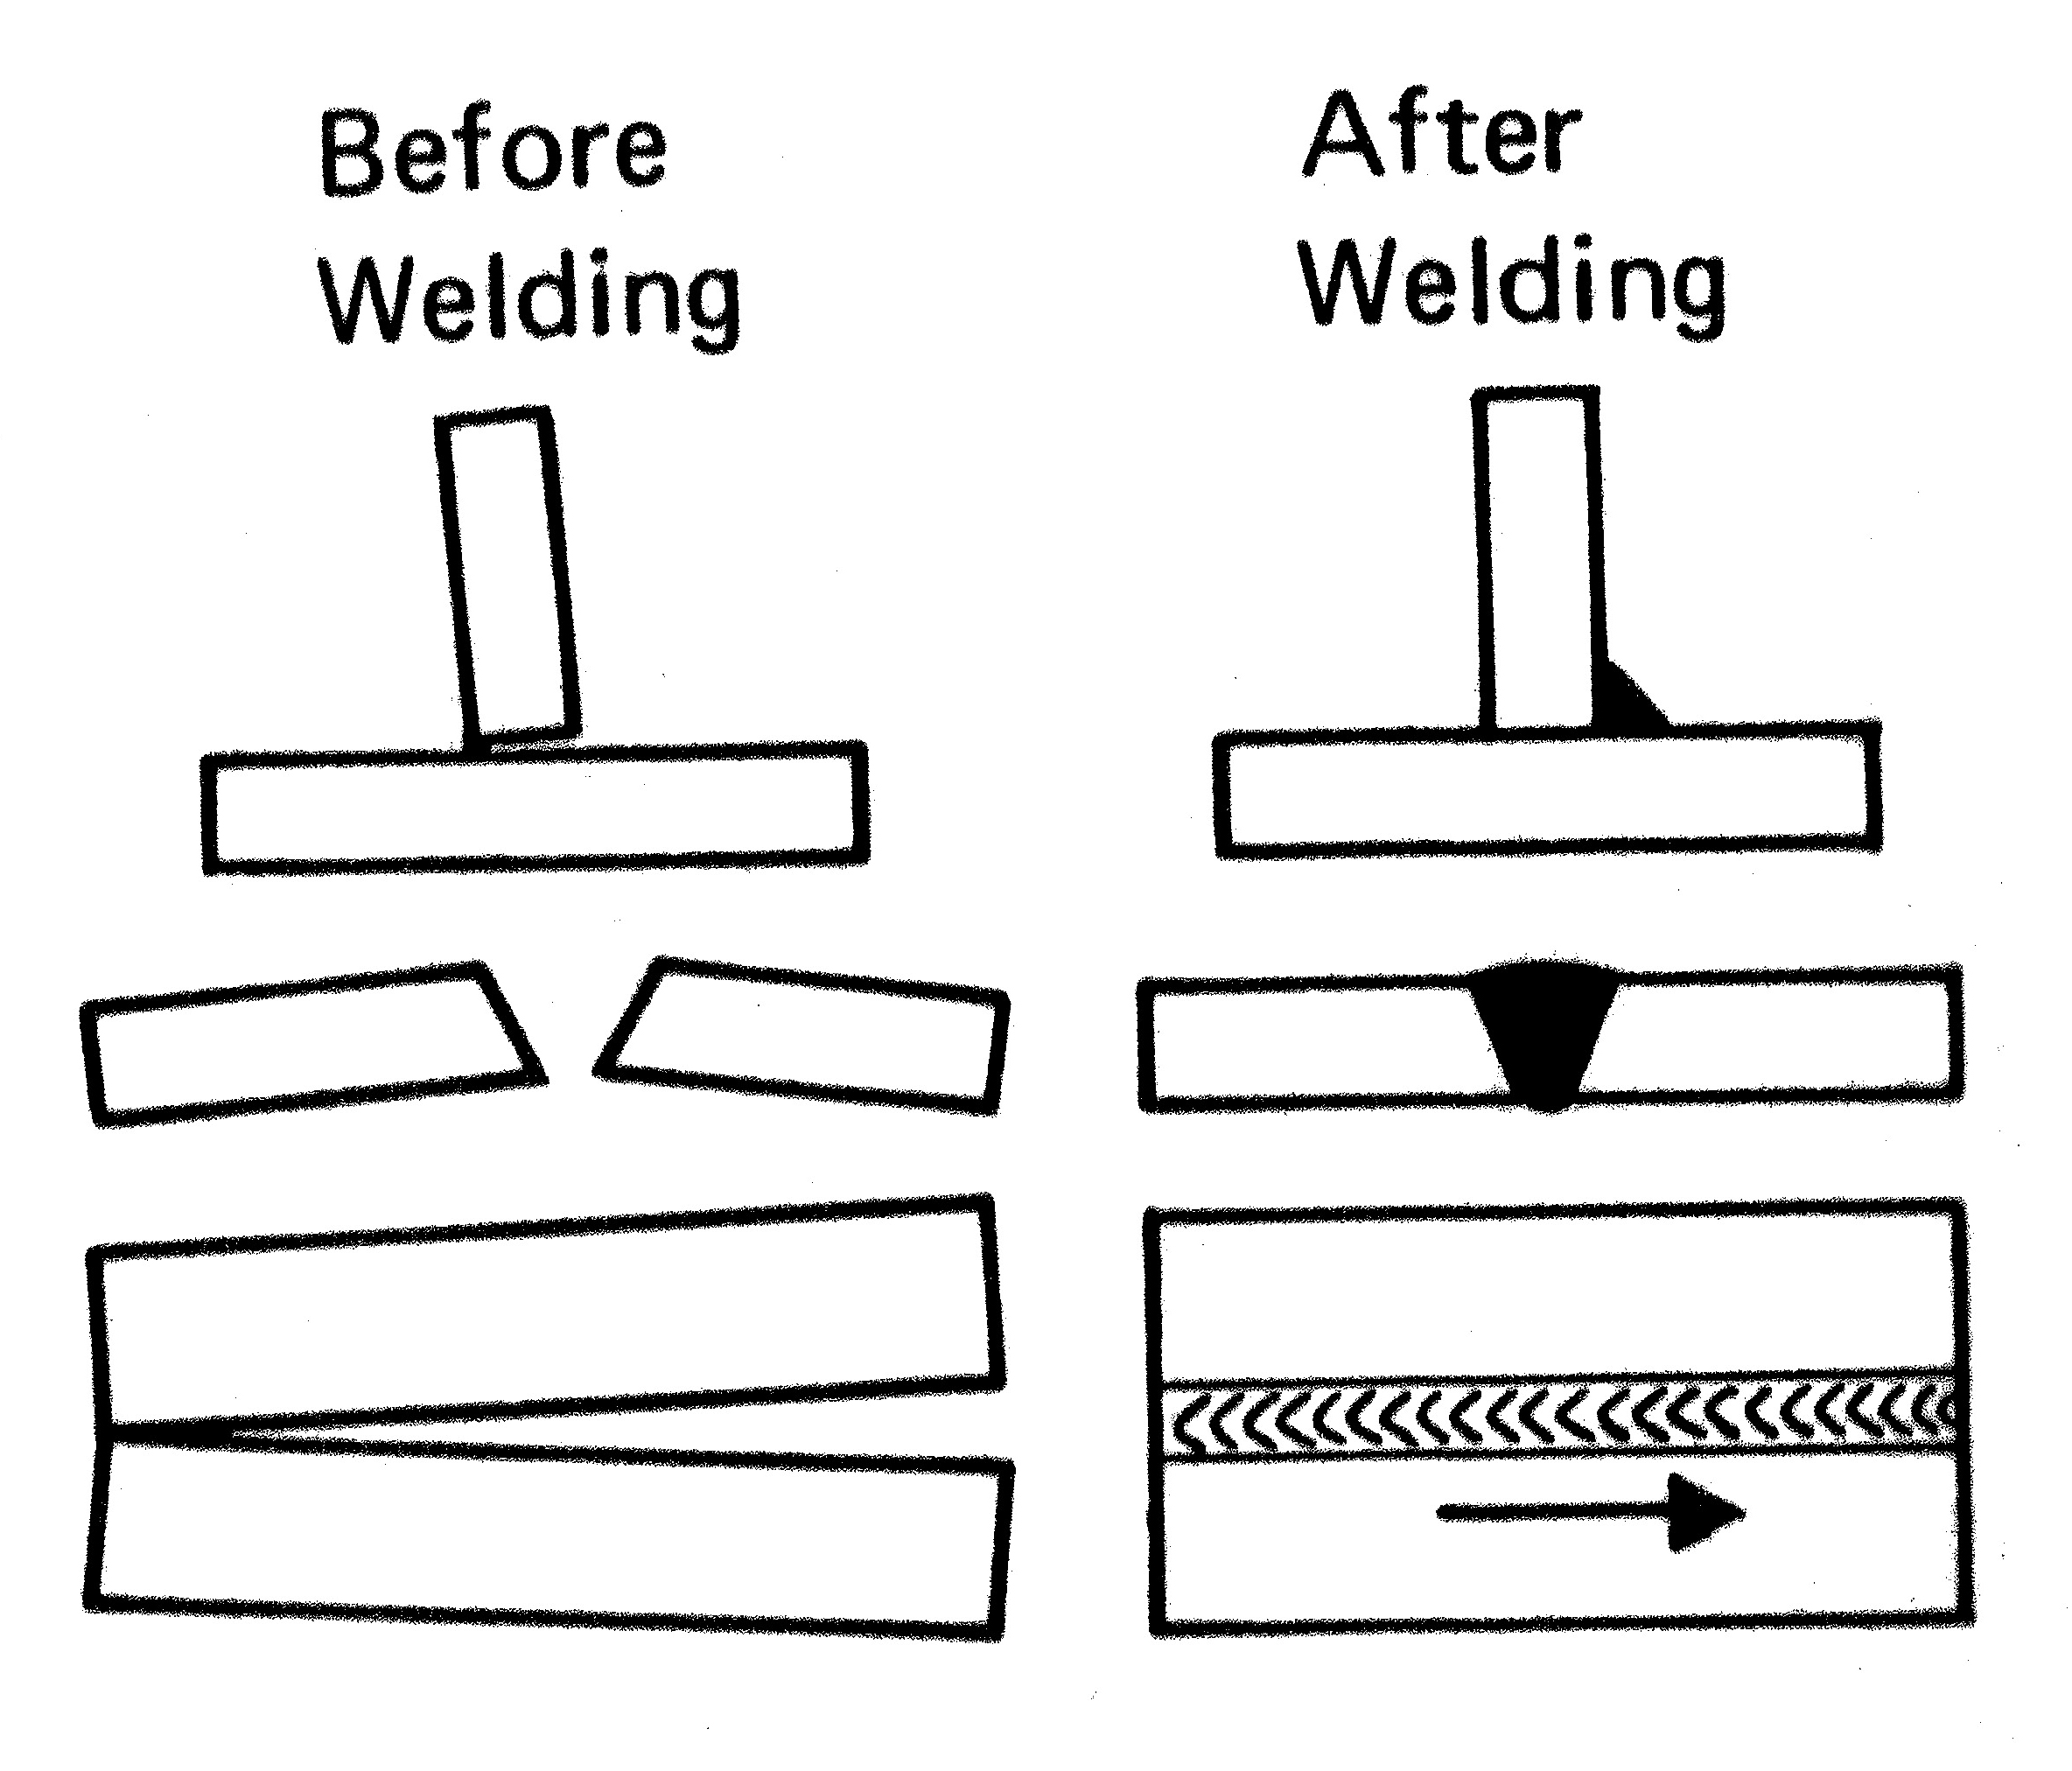 How To Control The Warping Of Parts In Thin Sheet Metal Mig Welding Machine Diagram Together With Fillet Weld Root Figure 6 Presetting Before Can Make Shrinkage Work For You